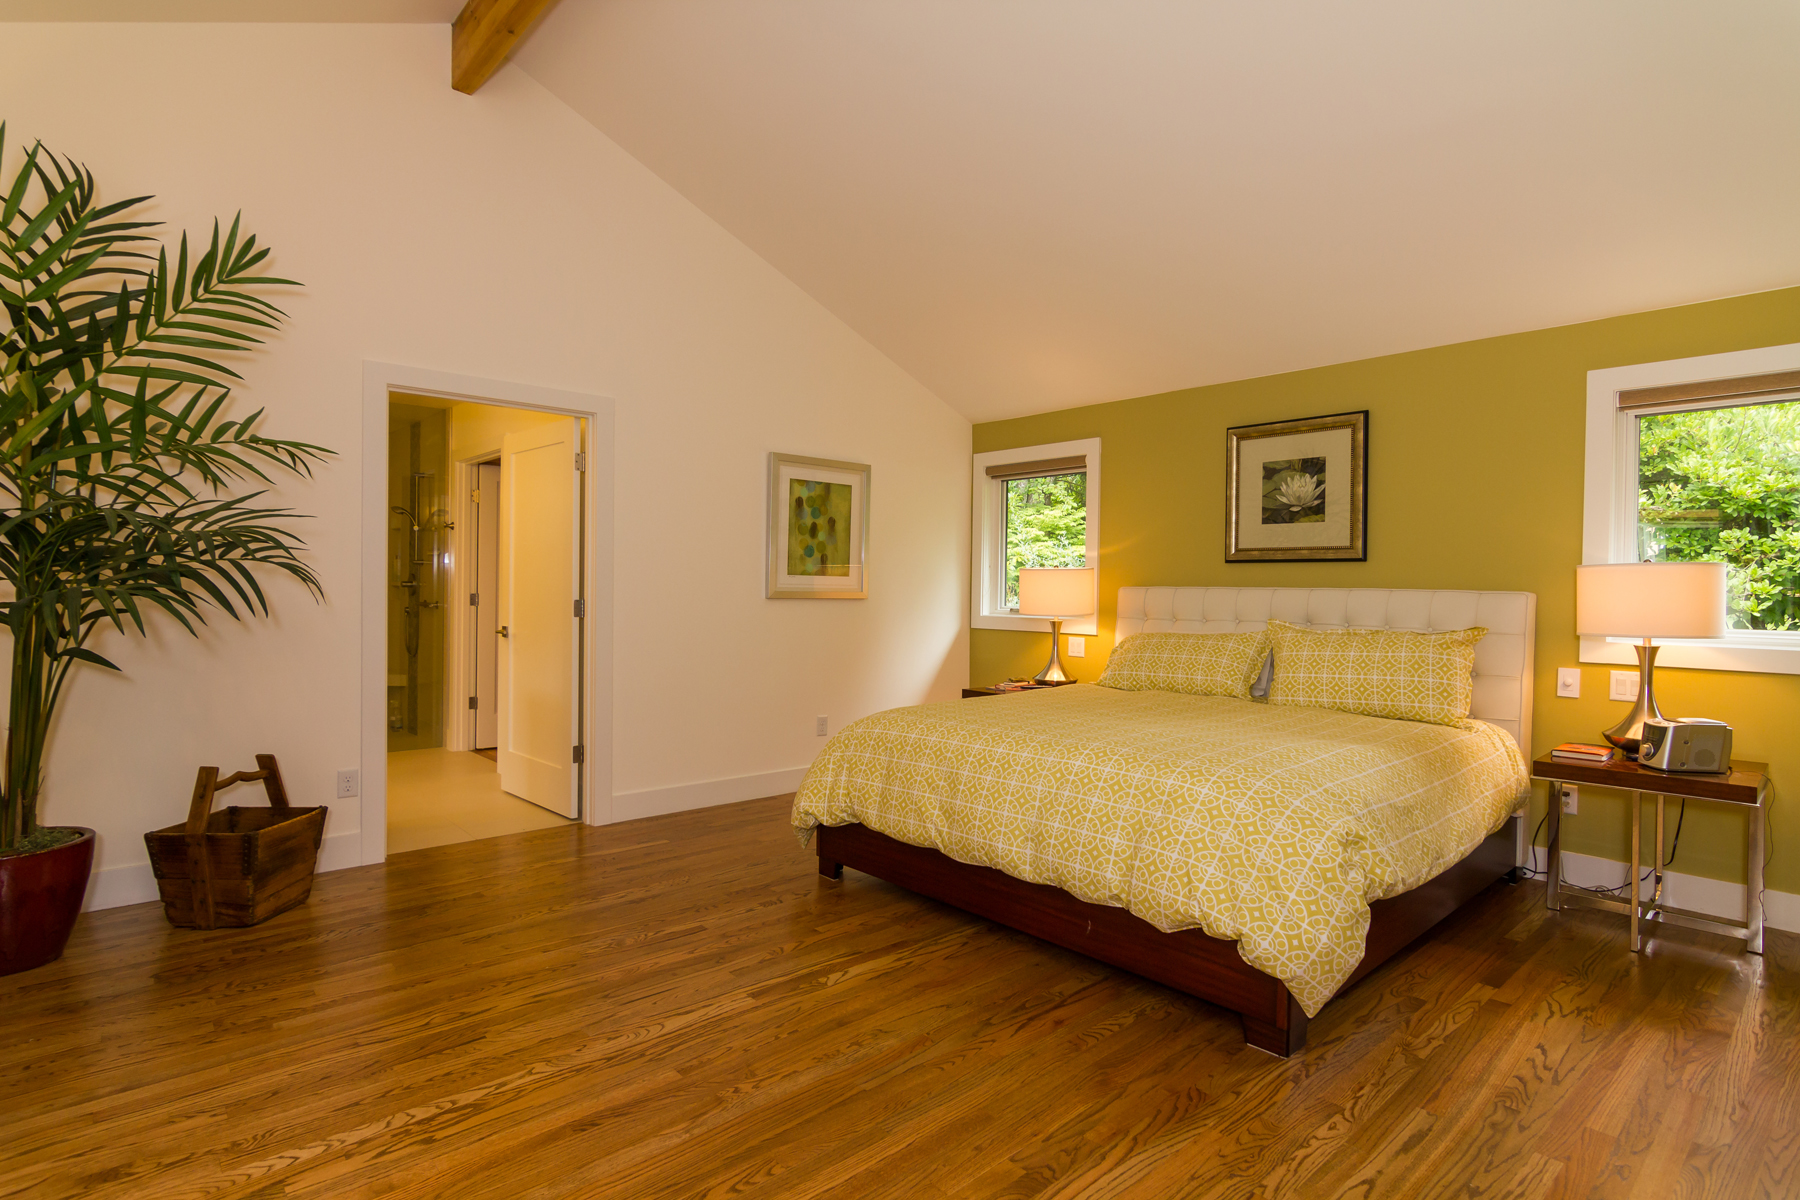 New master bedroom in 800 square foot addition.